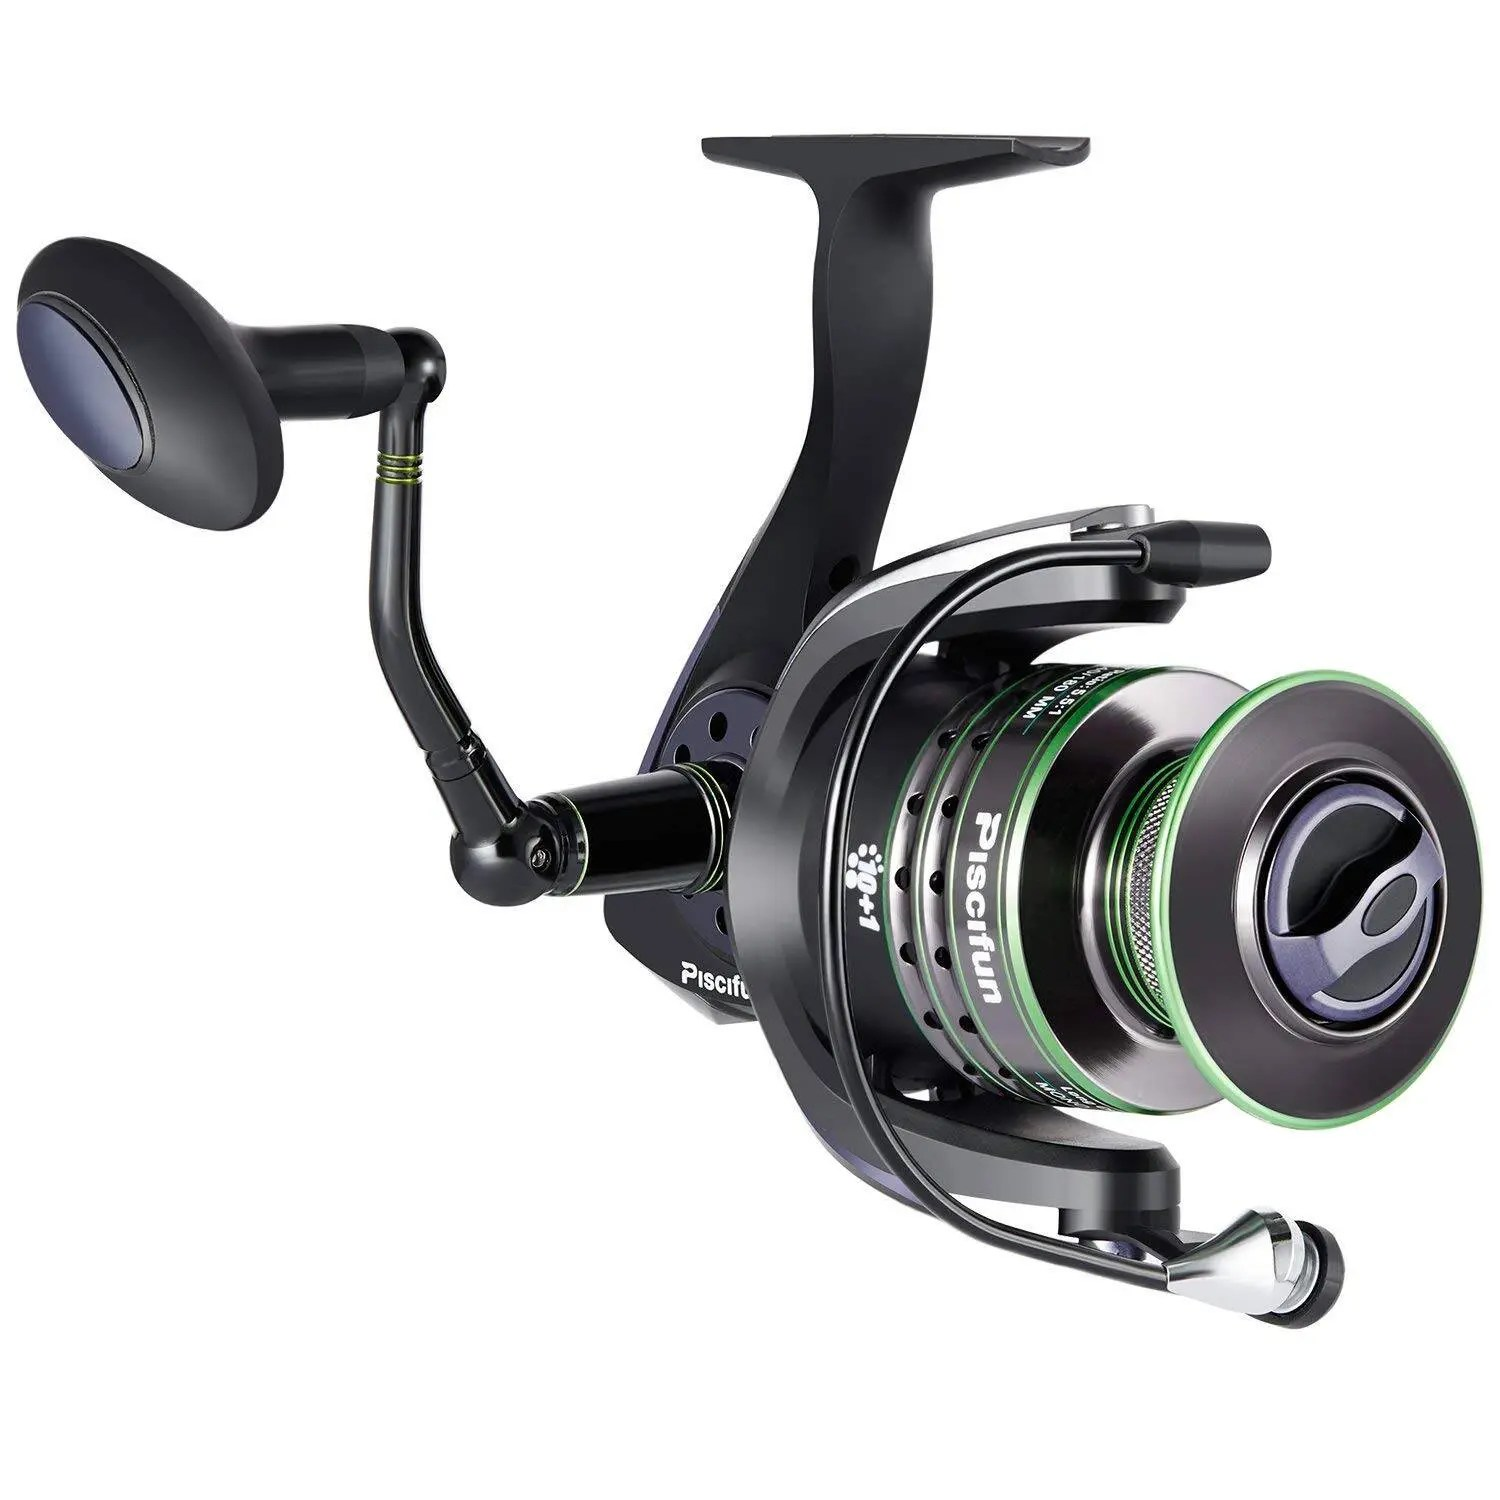 Piscifun New Spinning Reel